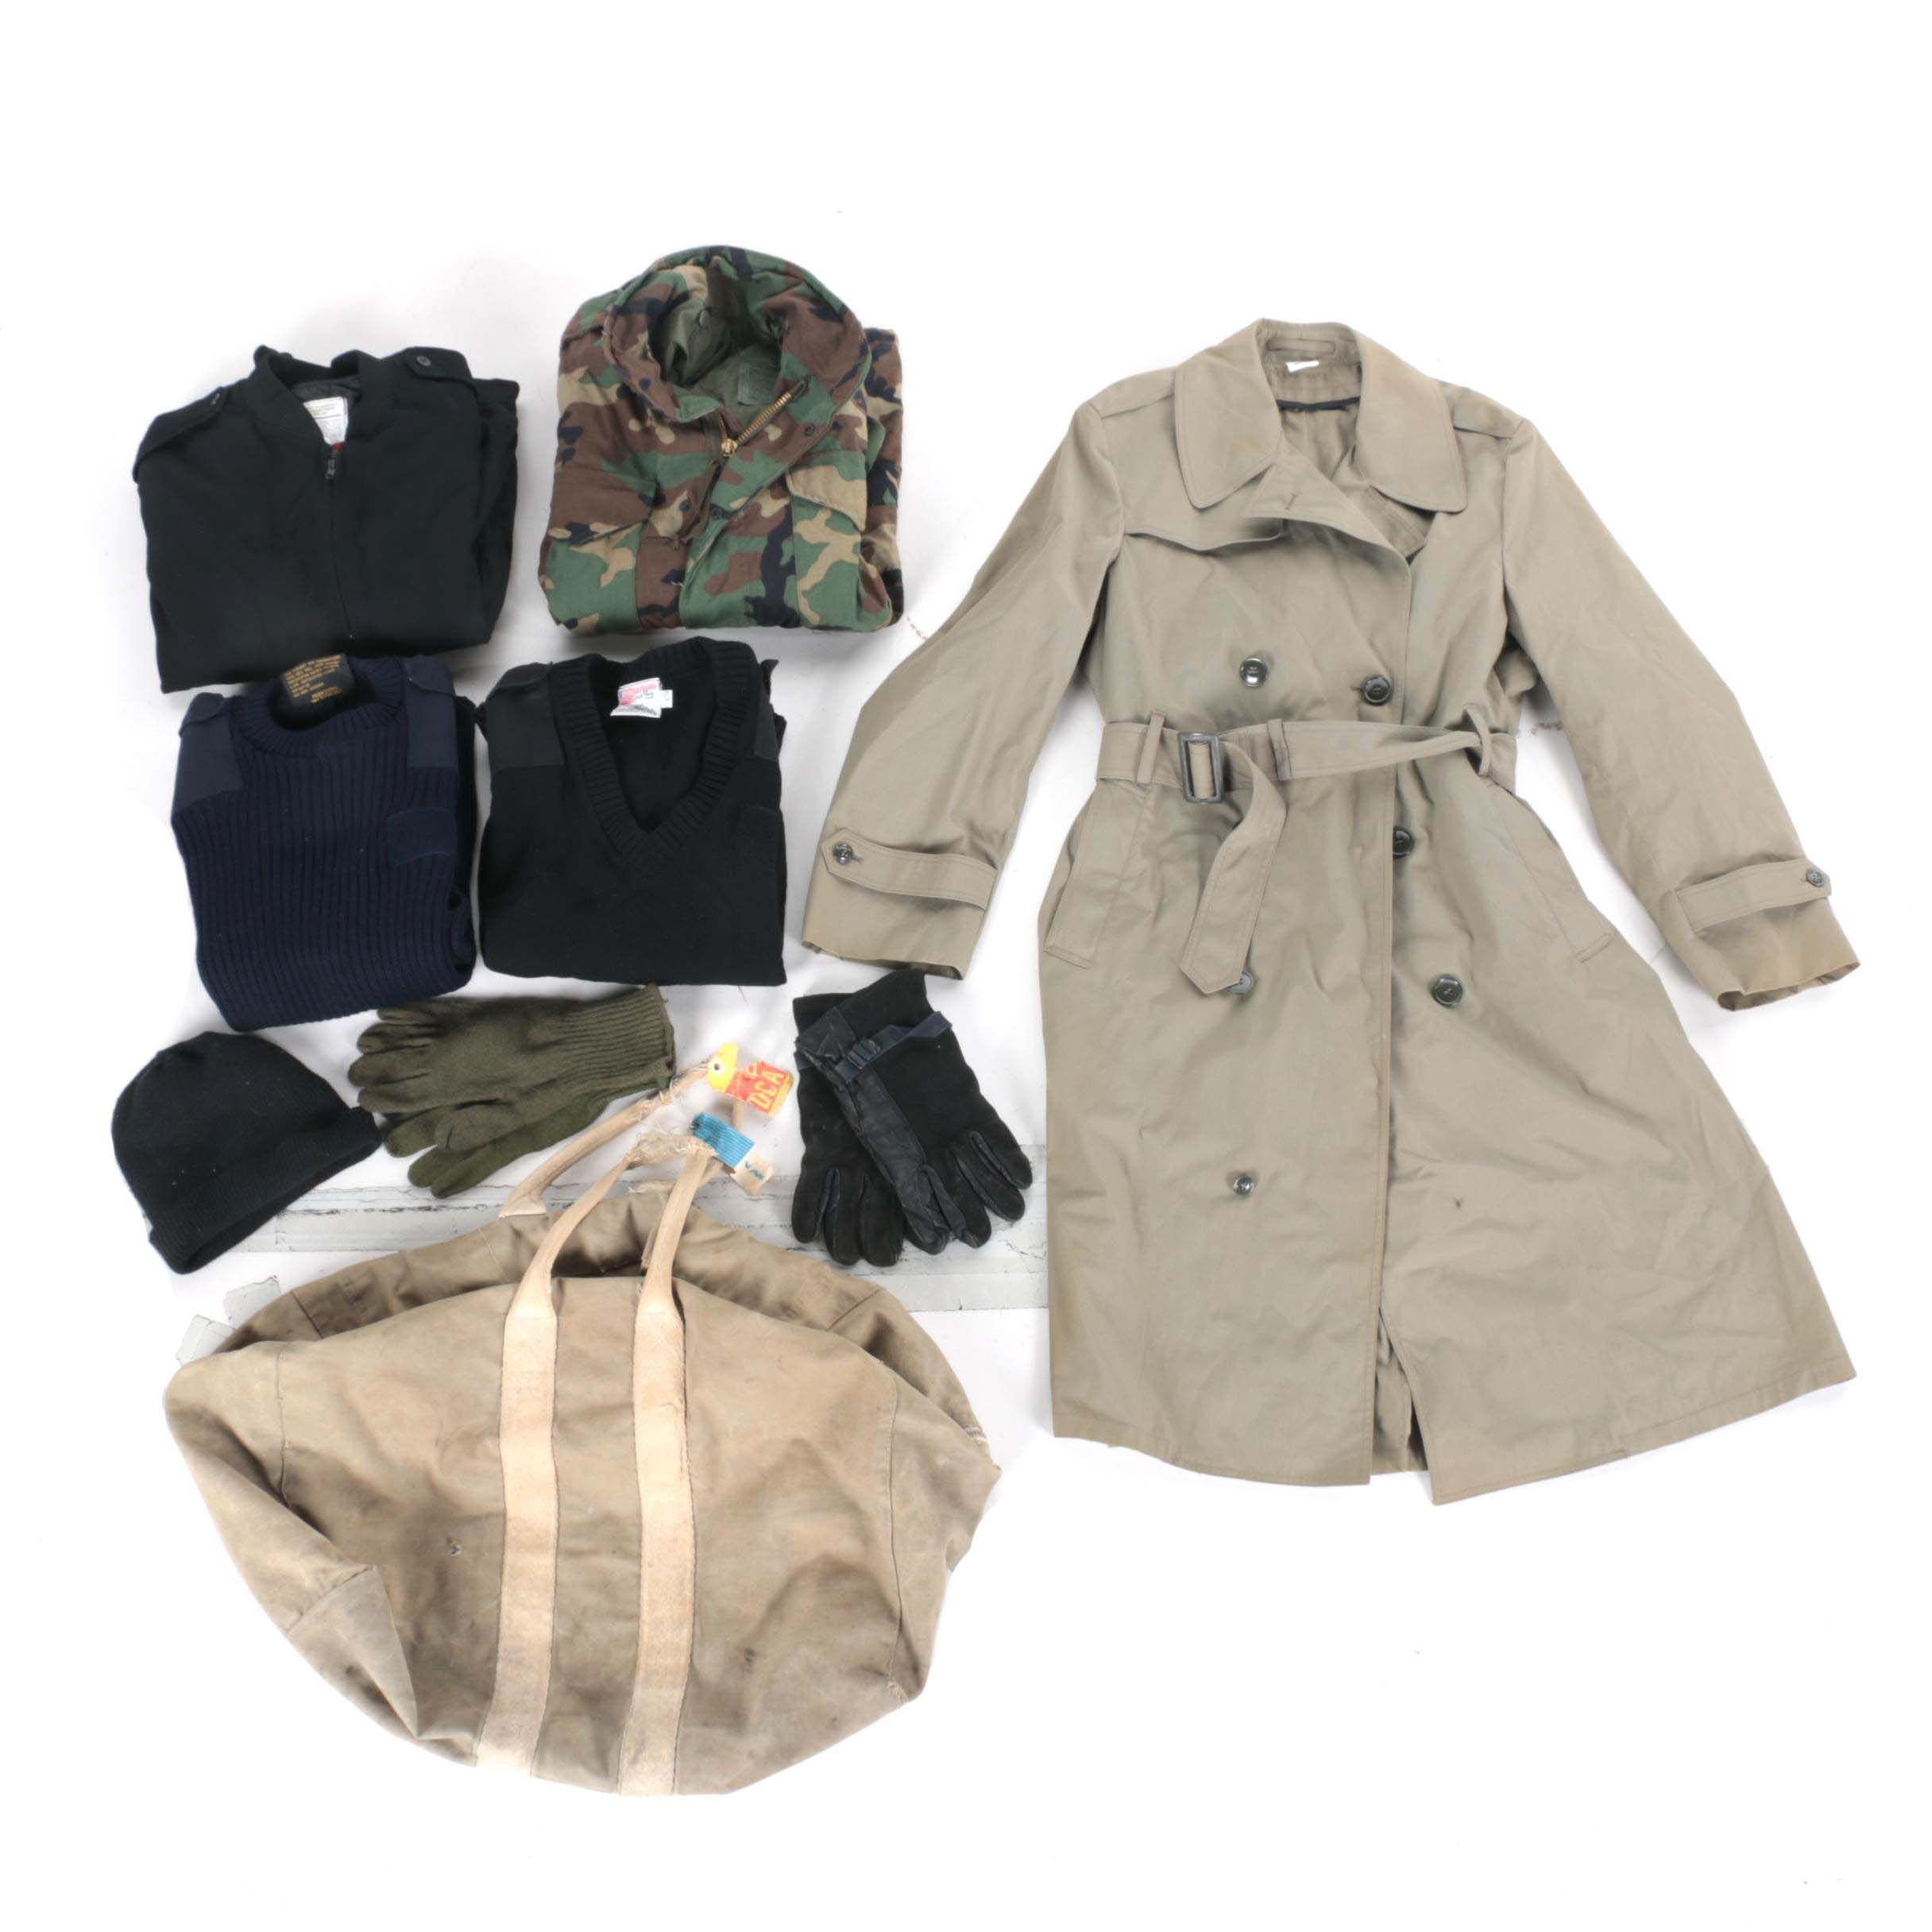 Military Clothing Assortment and Duffel